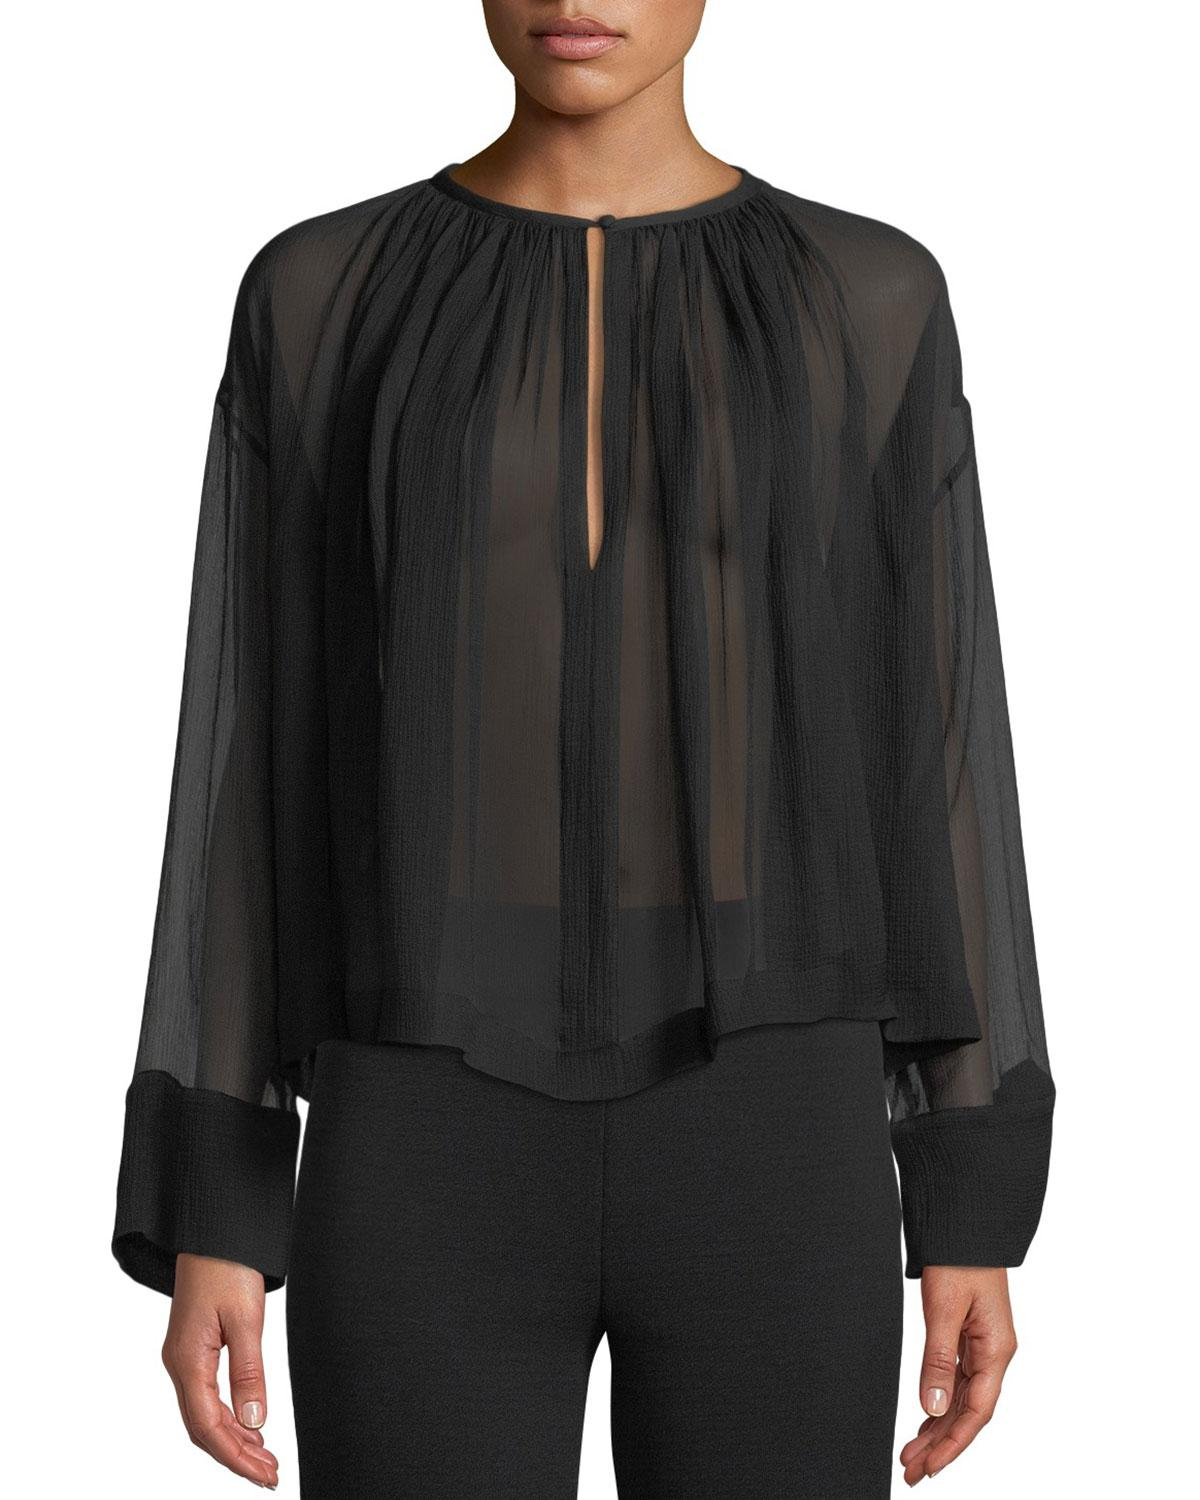 5eee92f4a0a Long-Sleeve Crinkle Chiffon Sheer Trapeze Blouse in Black